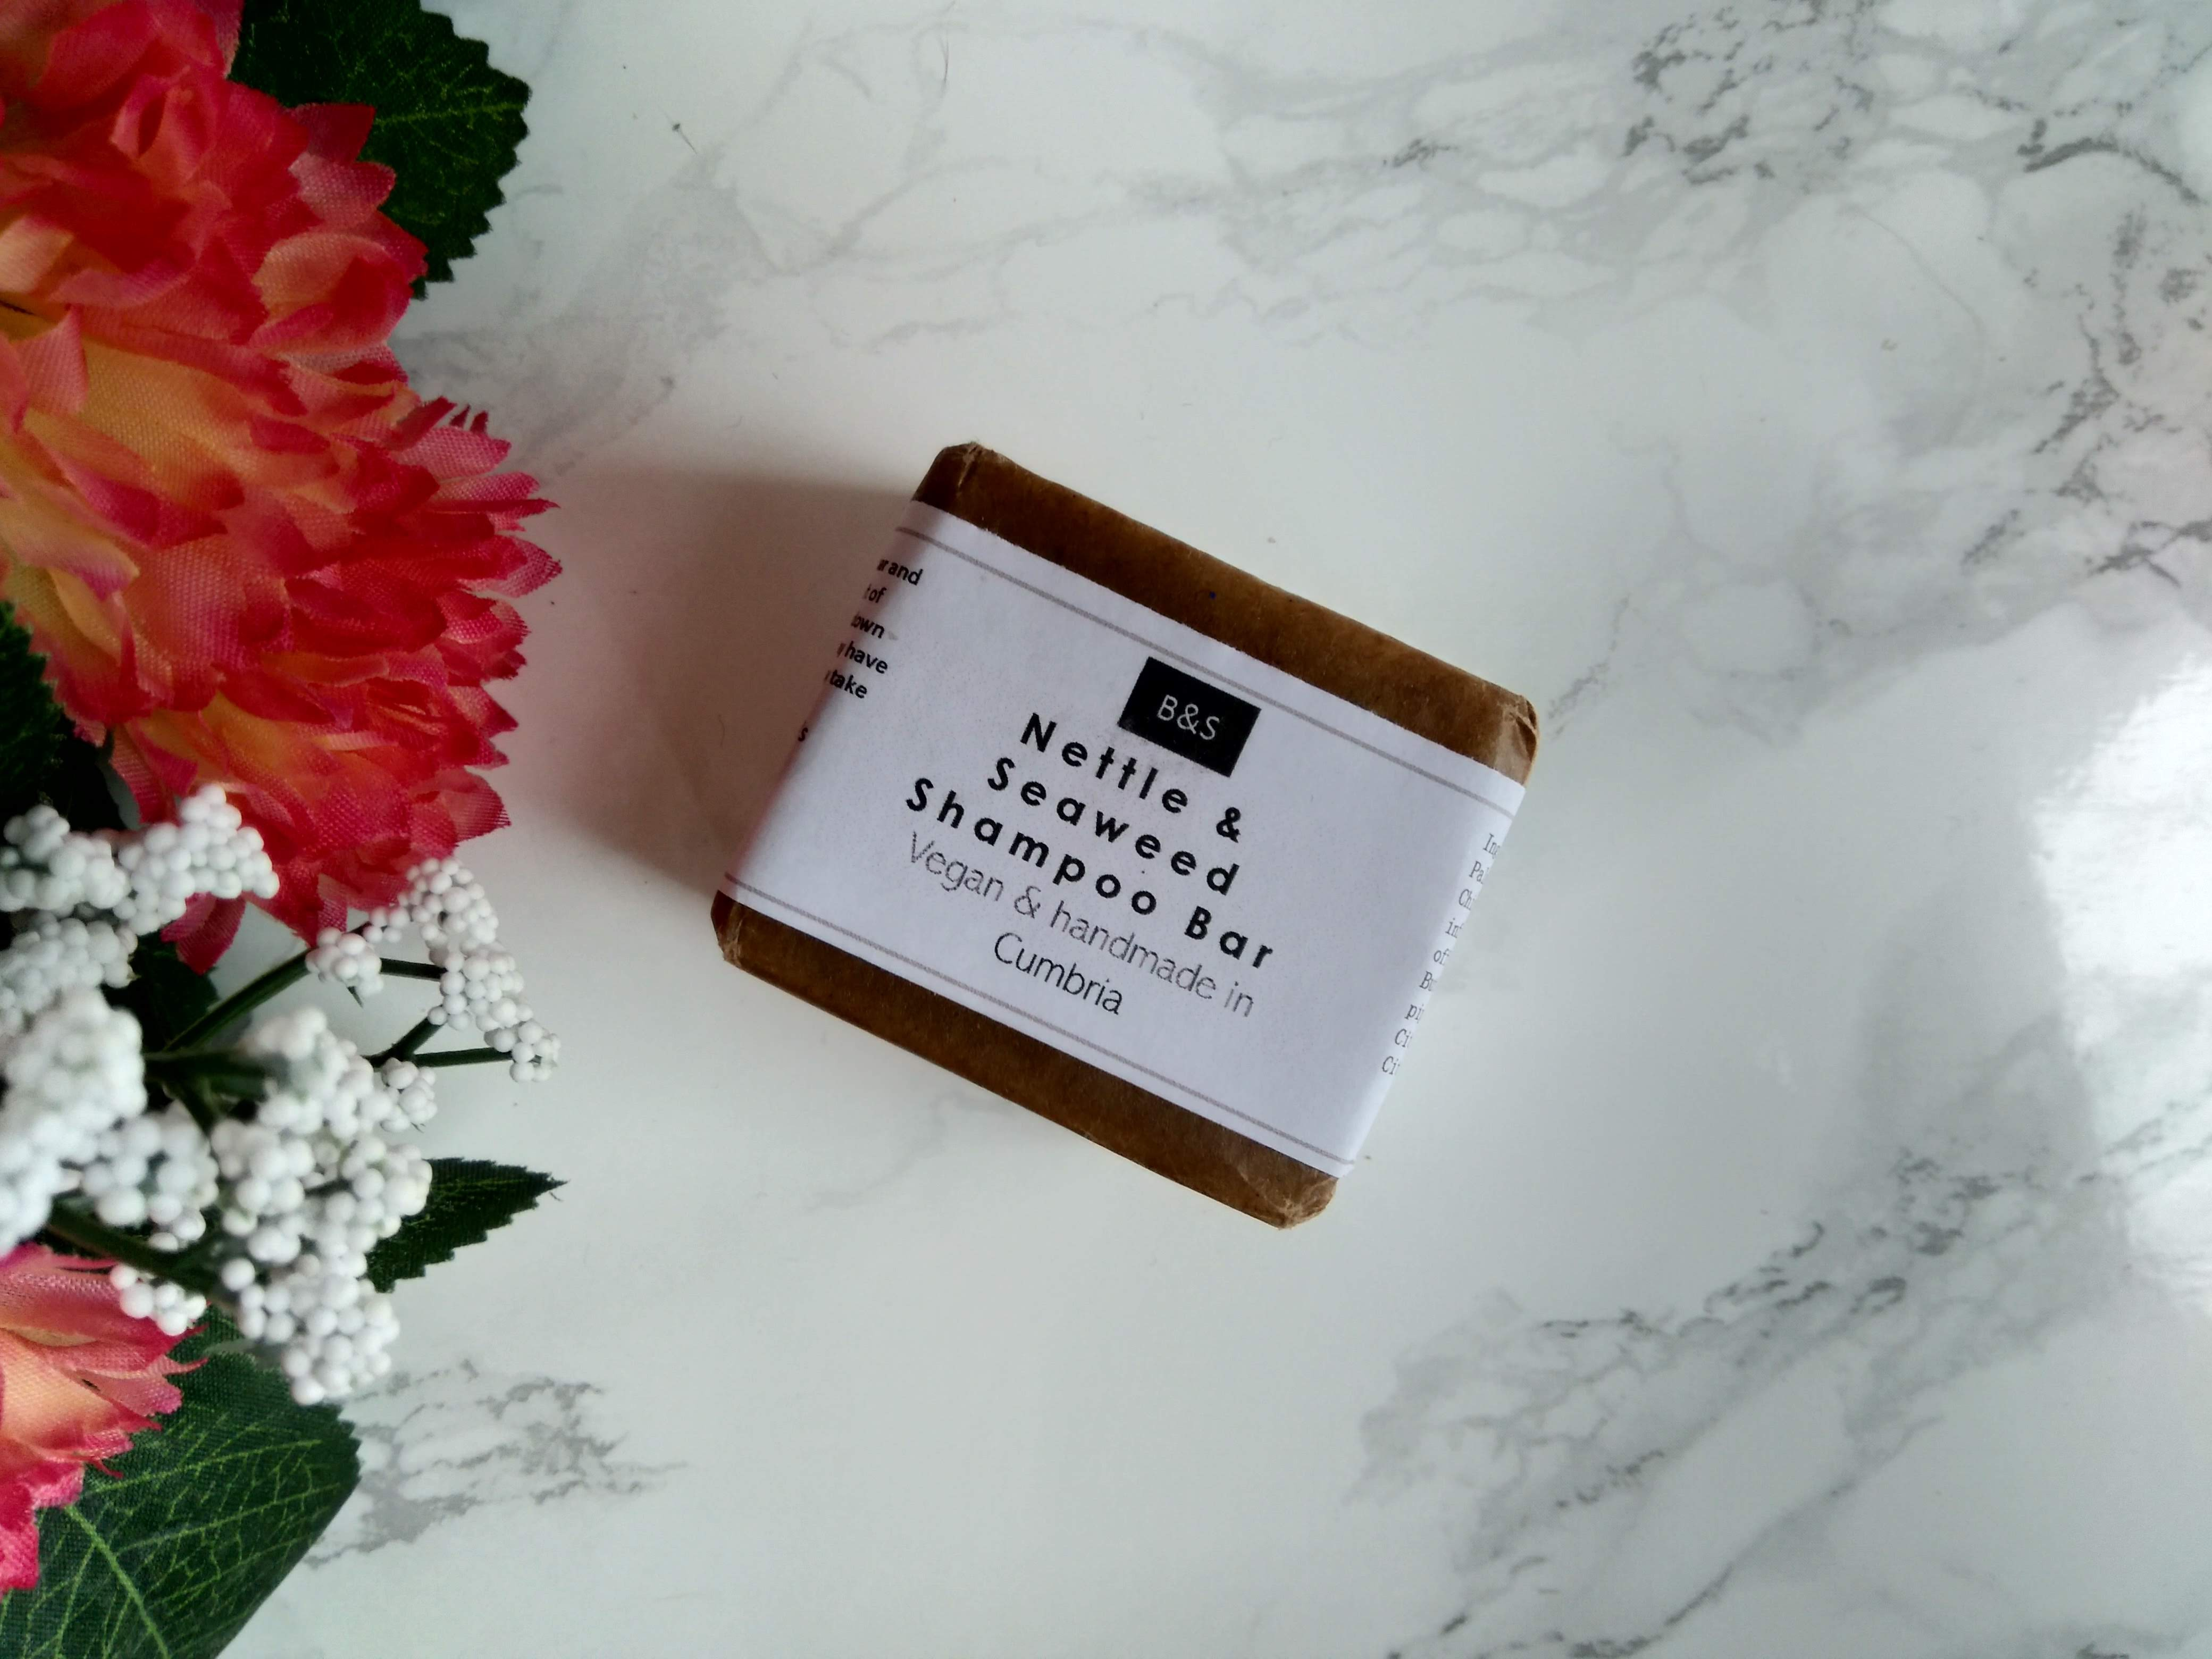 Bain & Savon Seaweed and Nettle Shampoo Bar